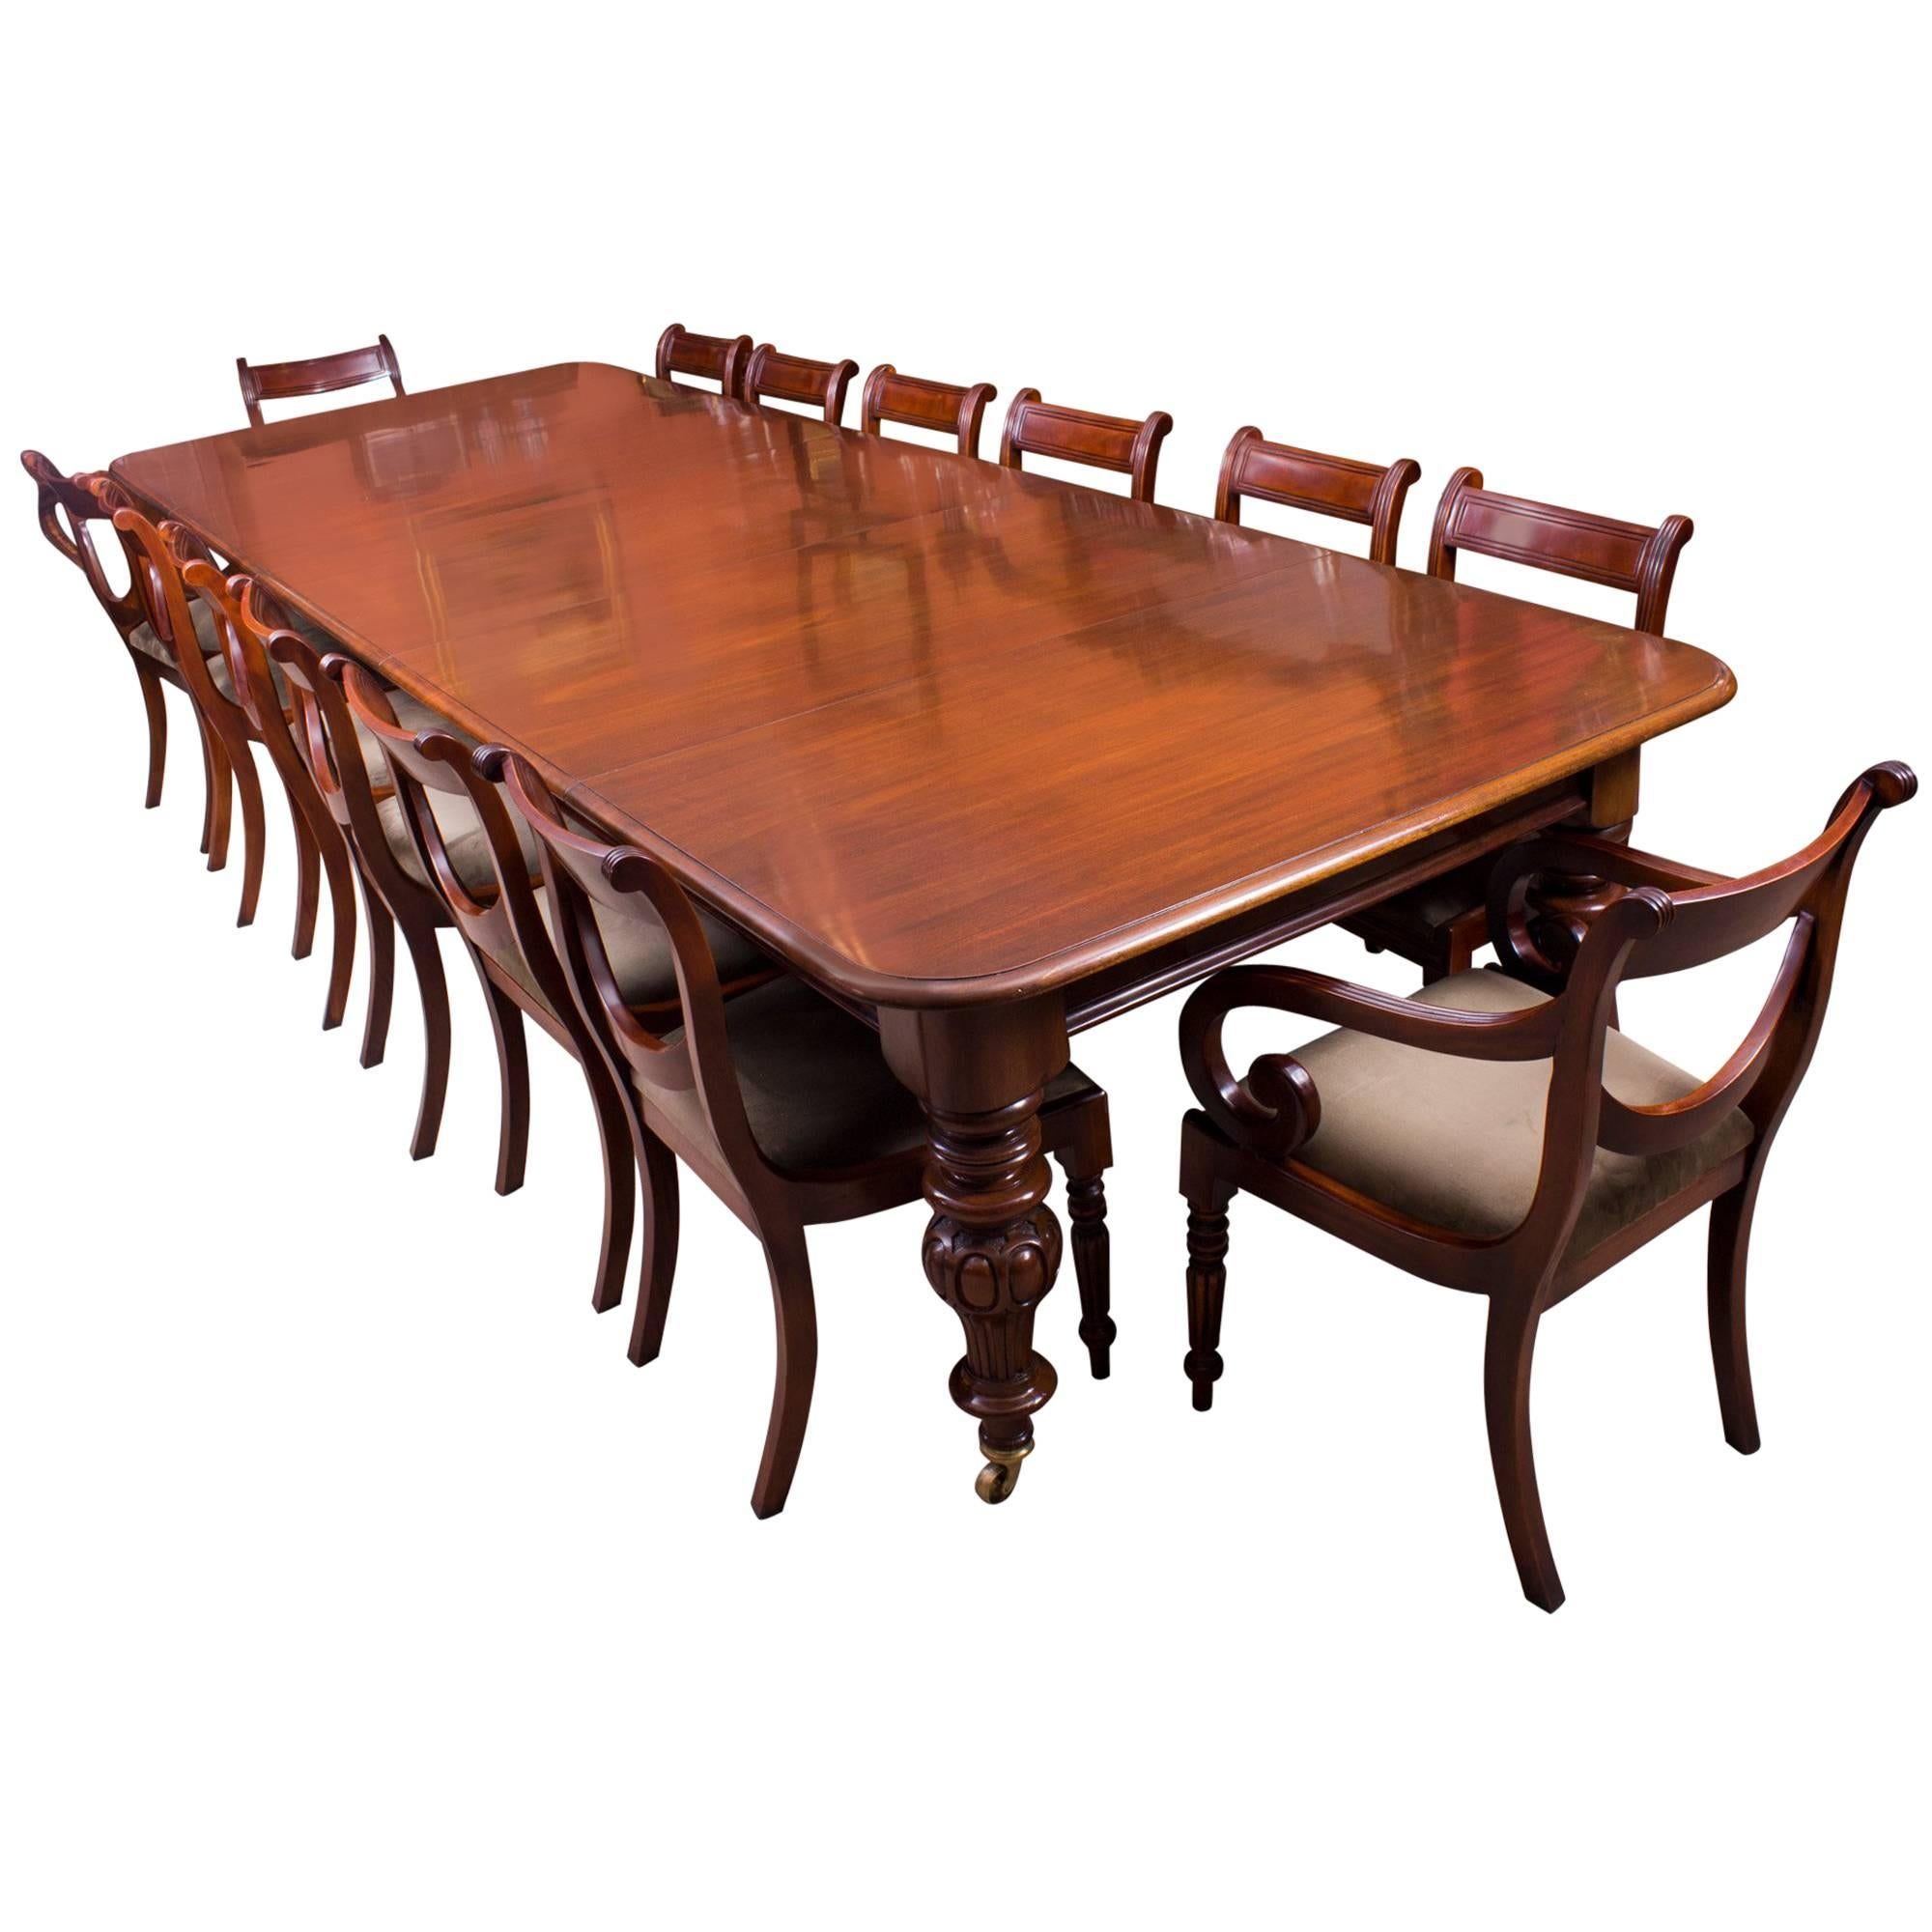 Attirant 19th Century Victorian Flame Mahogany Dining Table And 14 Chairs For Sale